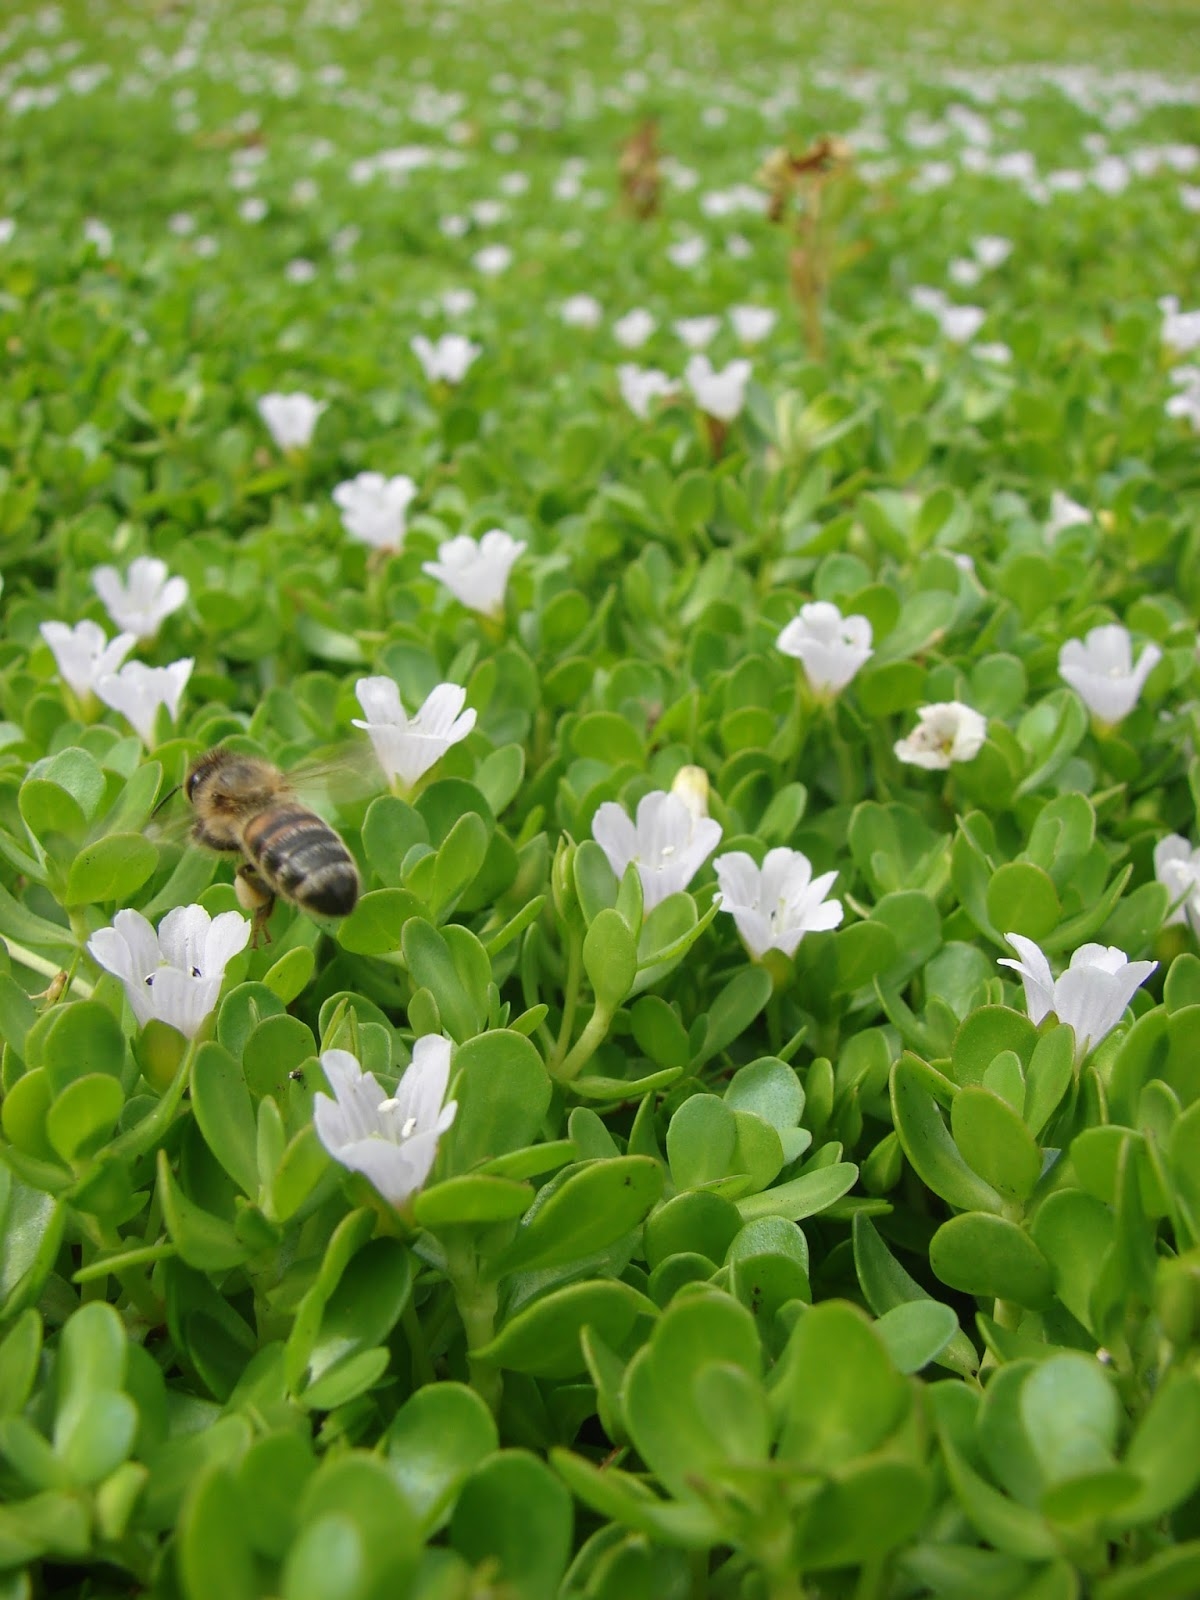 brahmi bacopa monnieri overview health benefits side effects tips curing disease. Black Bedroom Furniture Sets. Home Design Ideas